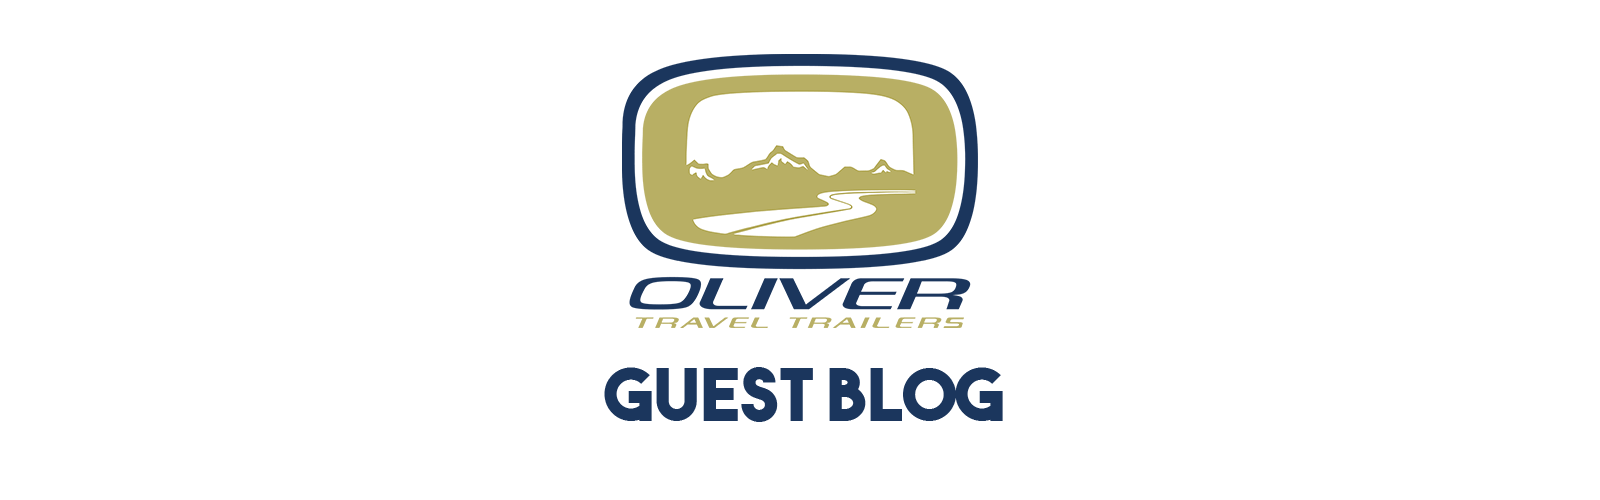 Infrared Thermometer Keeping It Handy Blog Oliver Travel Trailers